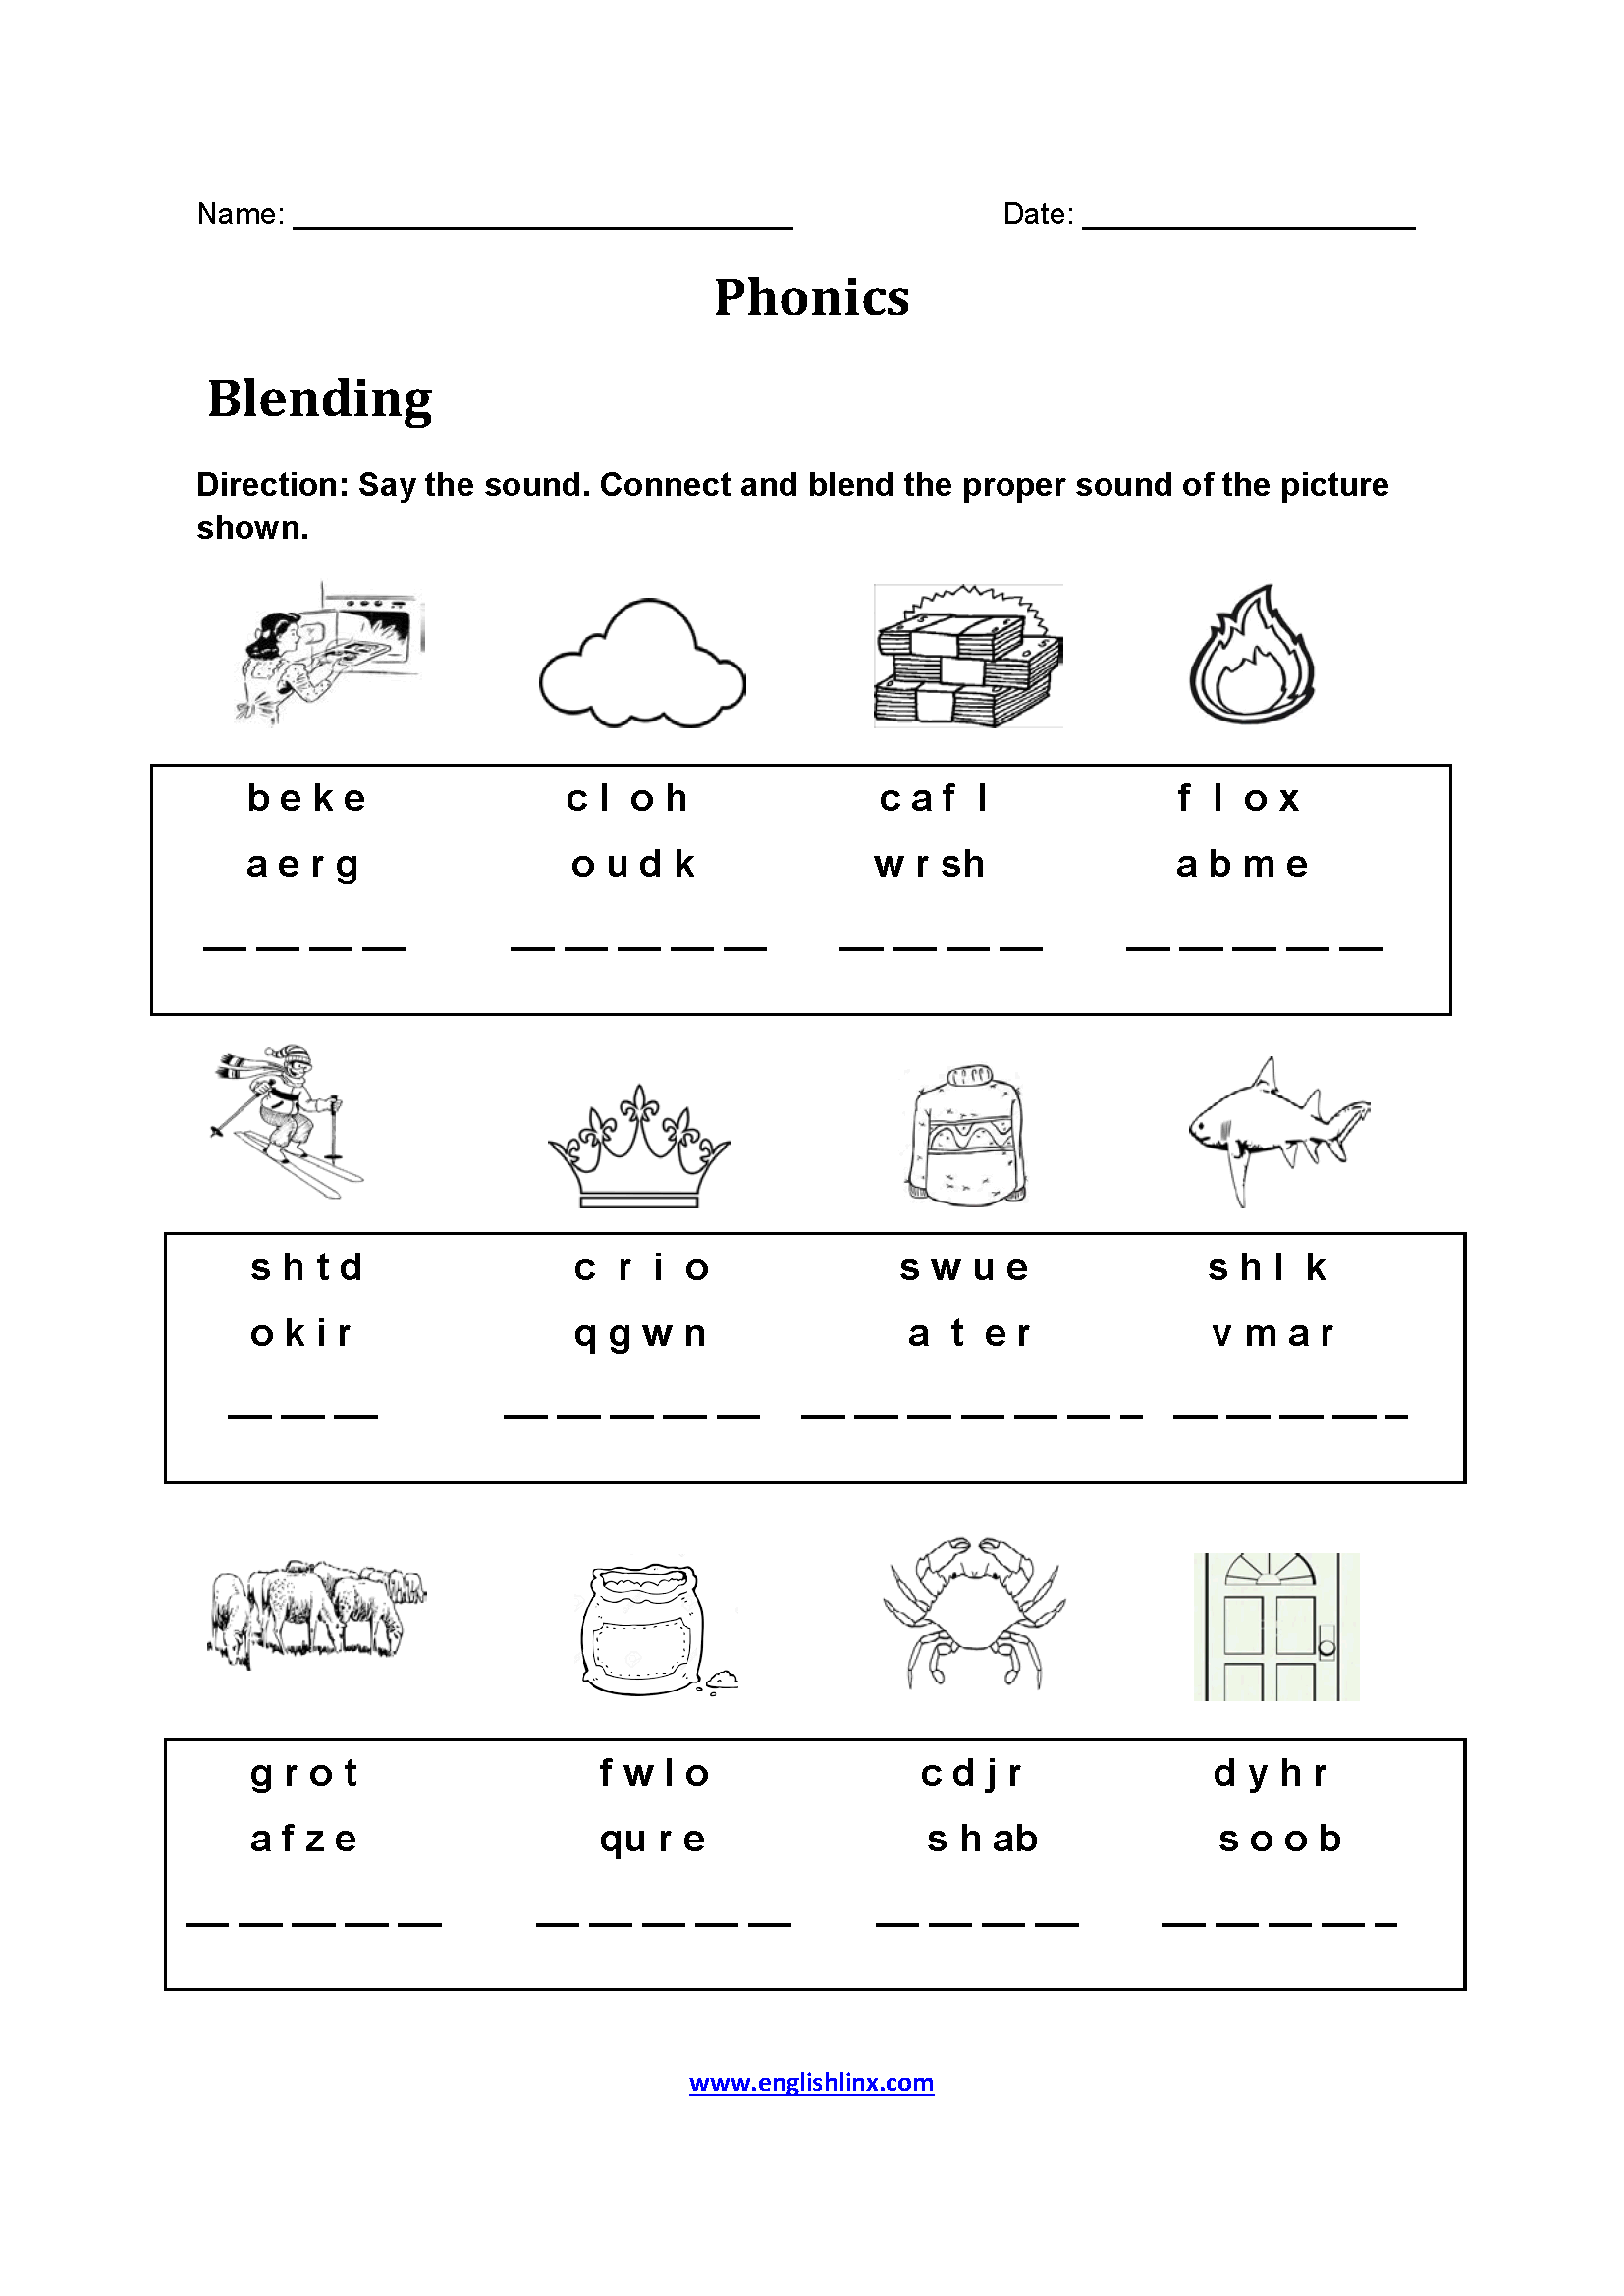 Sims Free Phonics Worksheets Grade 5